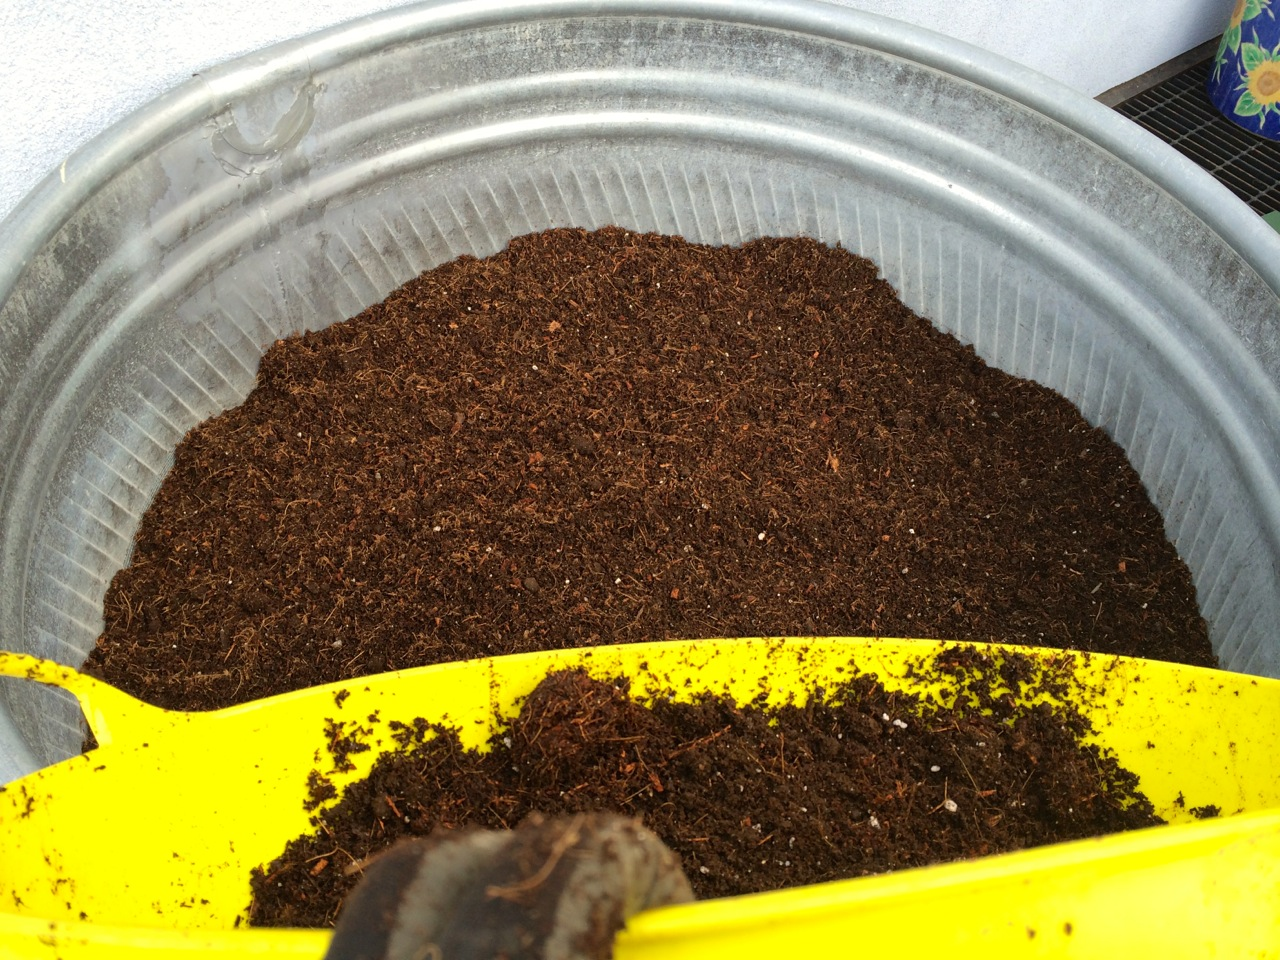 Dumping the soil mix, trug by trug, into the stock tank.